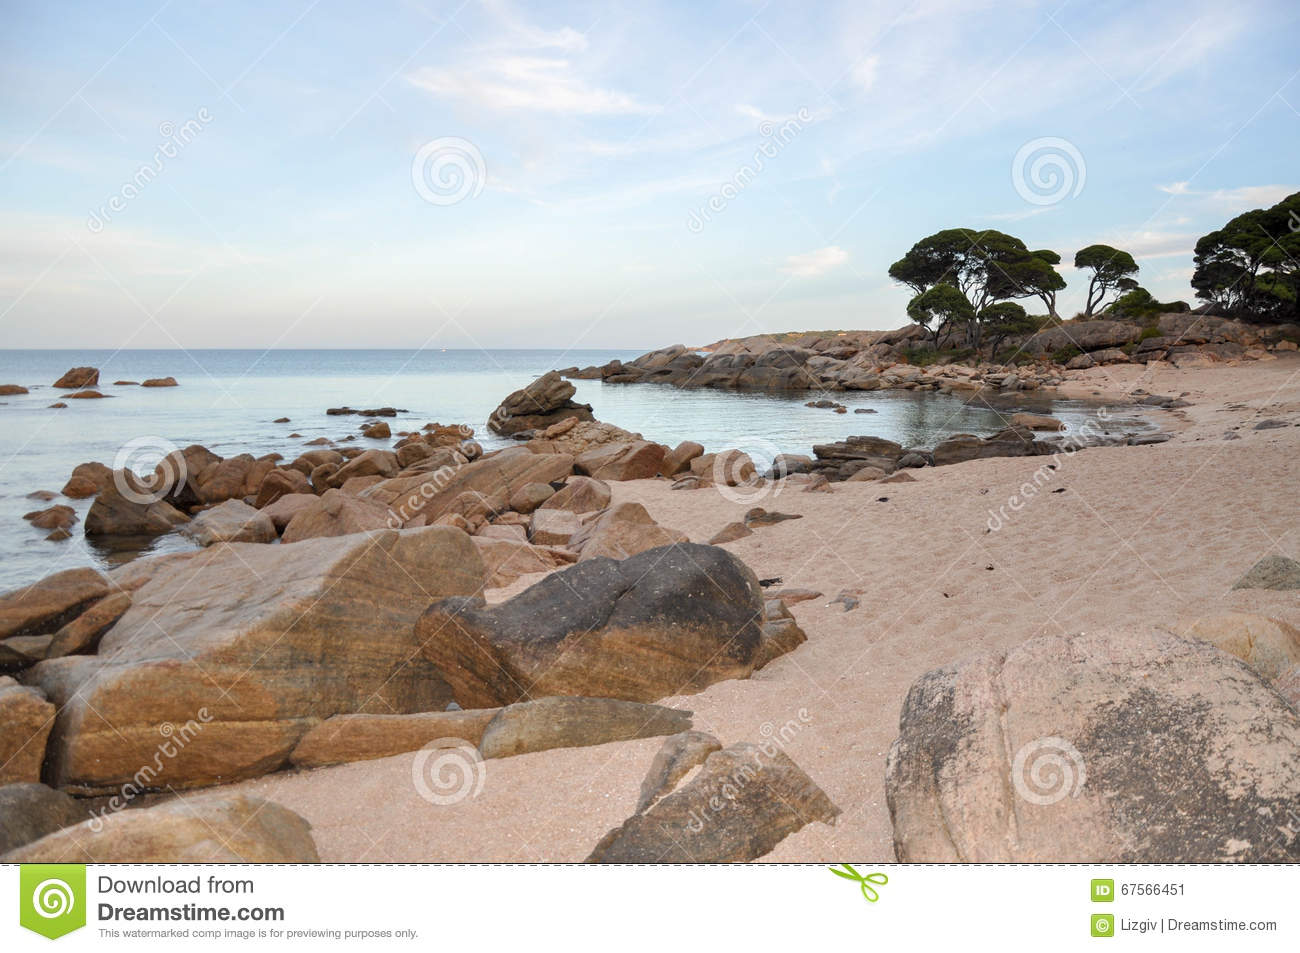 Download Shelley Cove In Bunker Bay, Western Australia Stock Image - Image of formations, ocean: 67566451